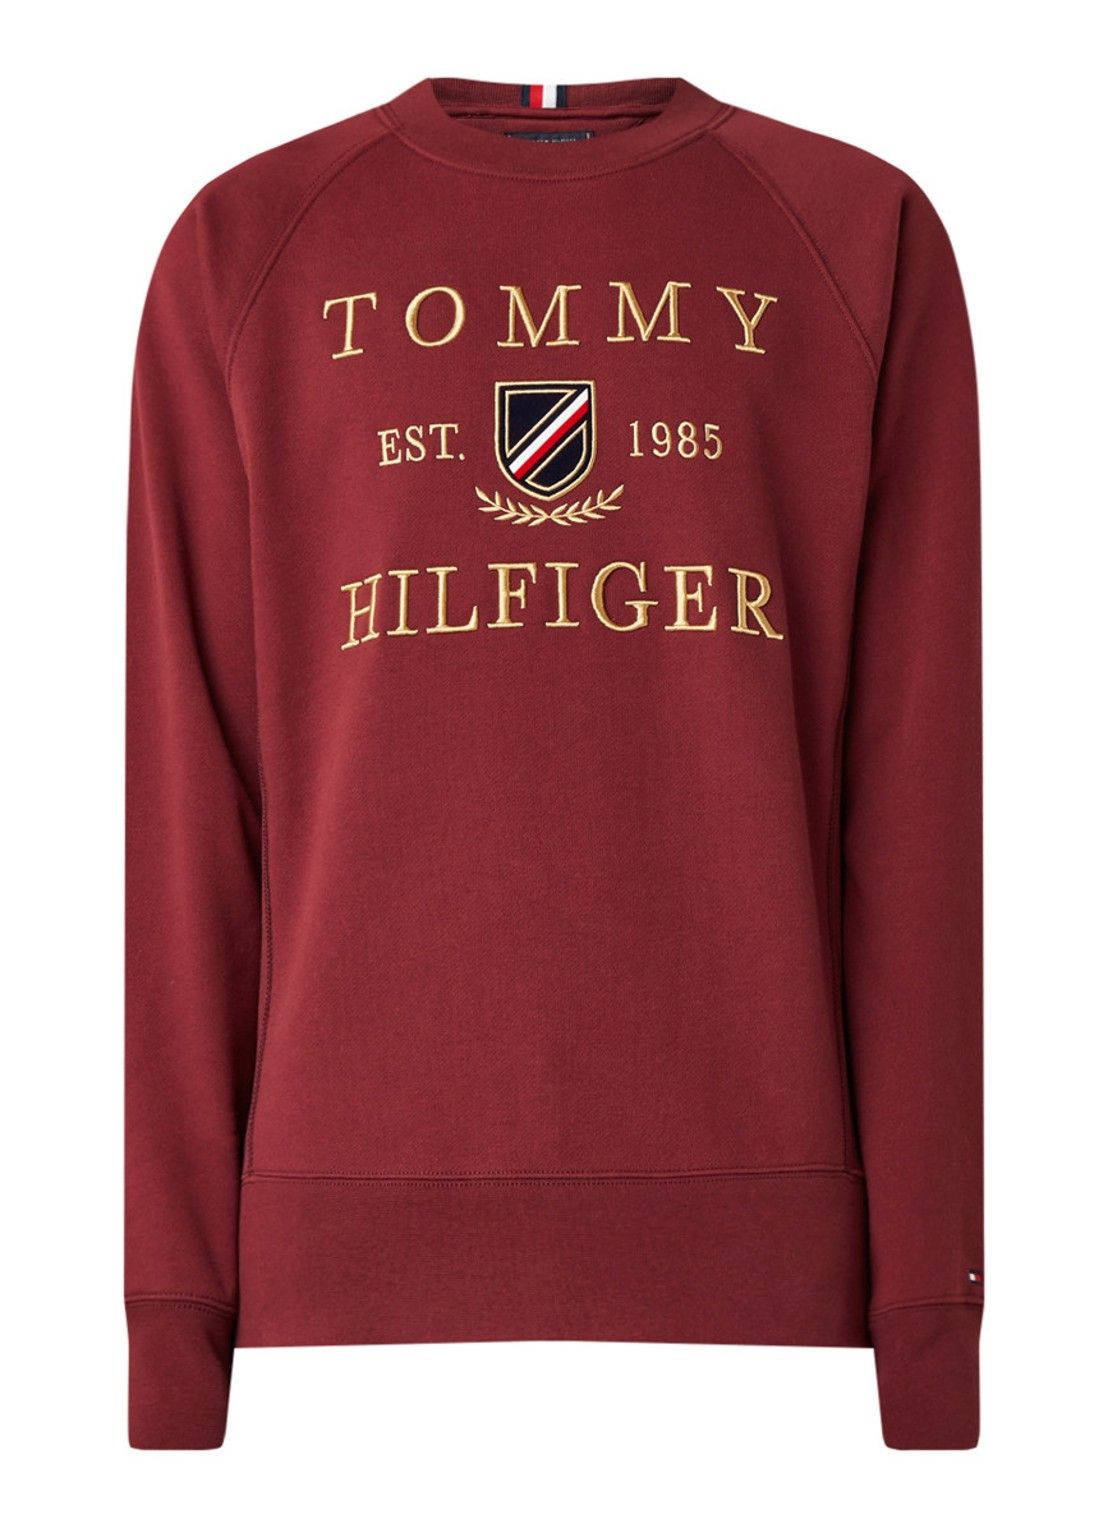 Tommy Hilfiger Icon Sweater Met Logoborduring De Bijenkorf Tommy Hilfiger Sweatshirt Polo T Shirts Tommy Hilfiger